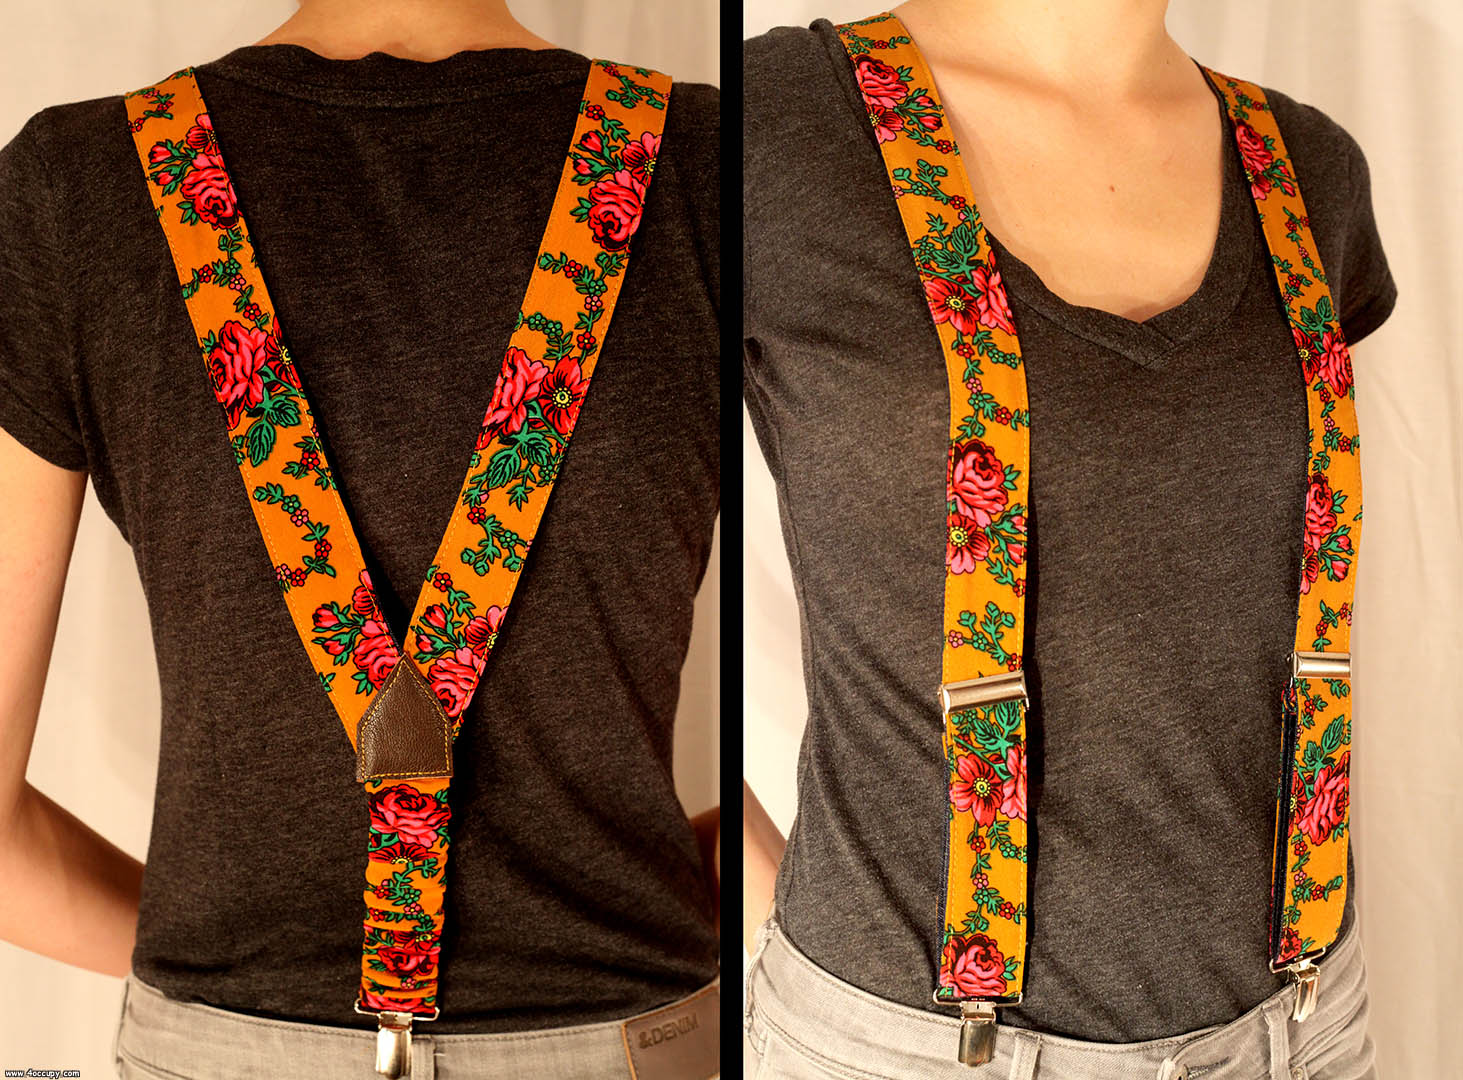 Handcrafted orange suspenders